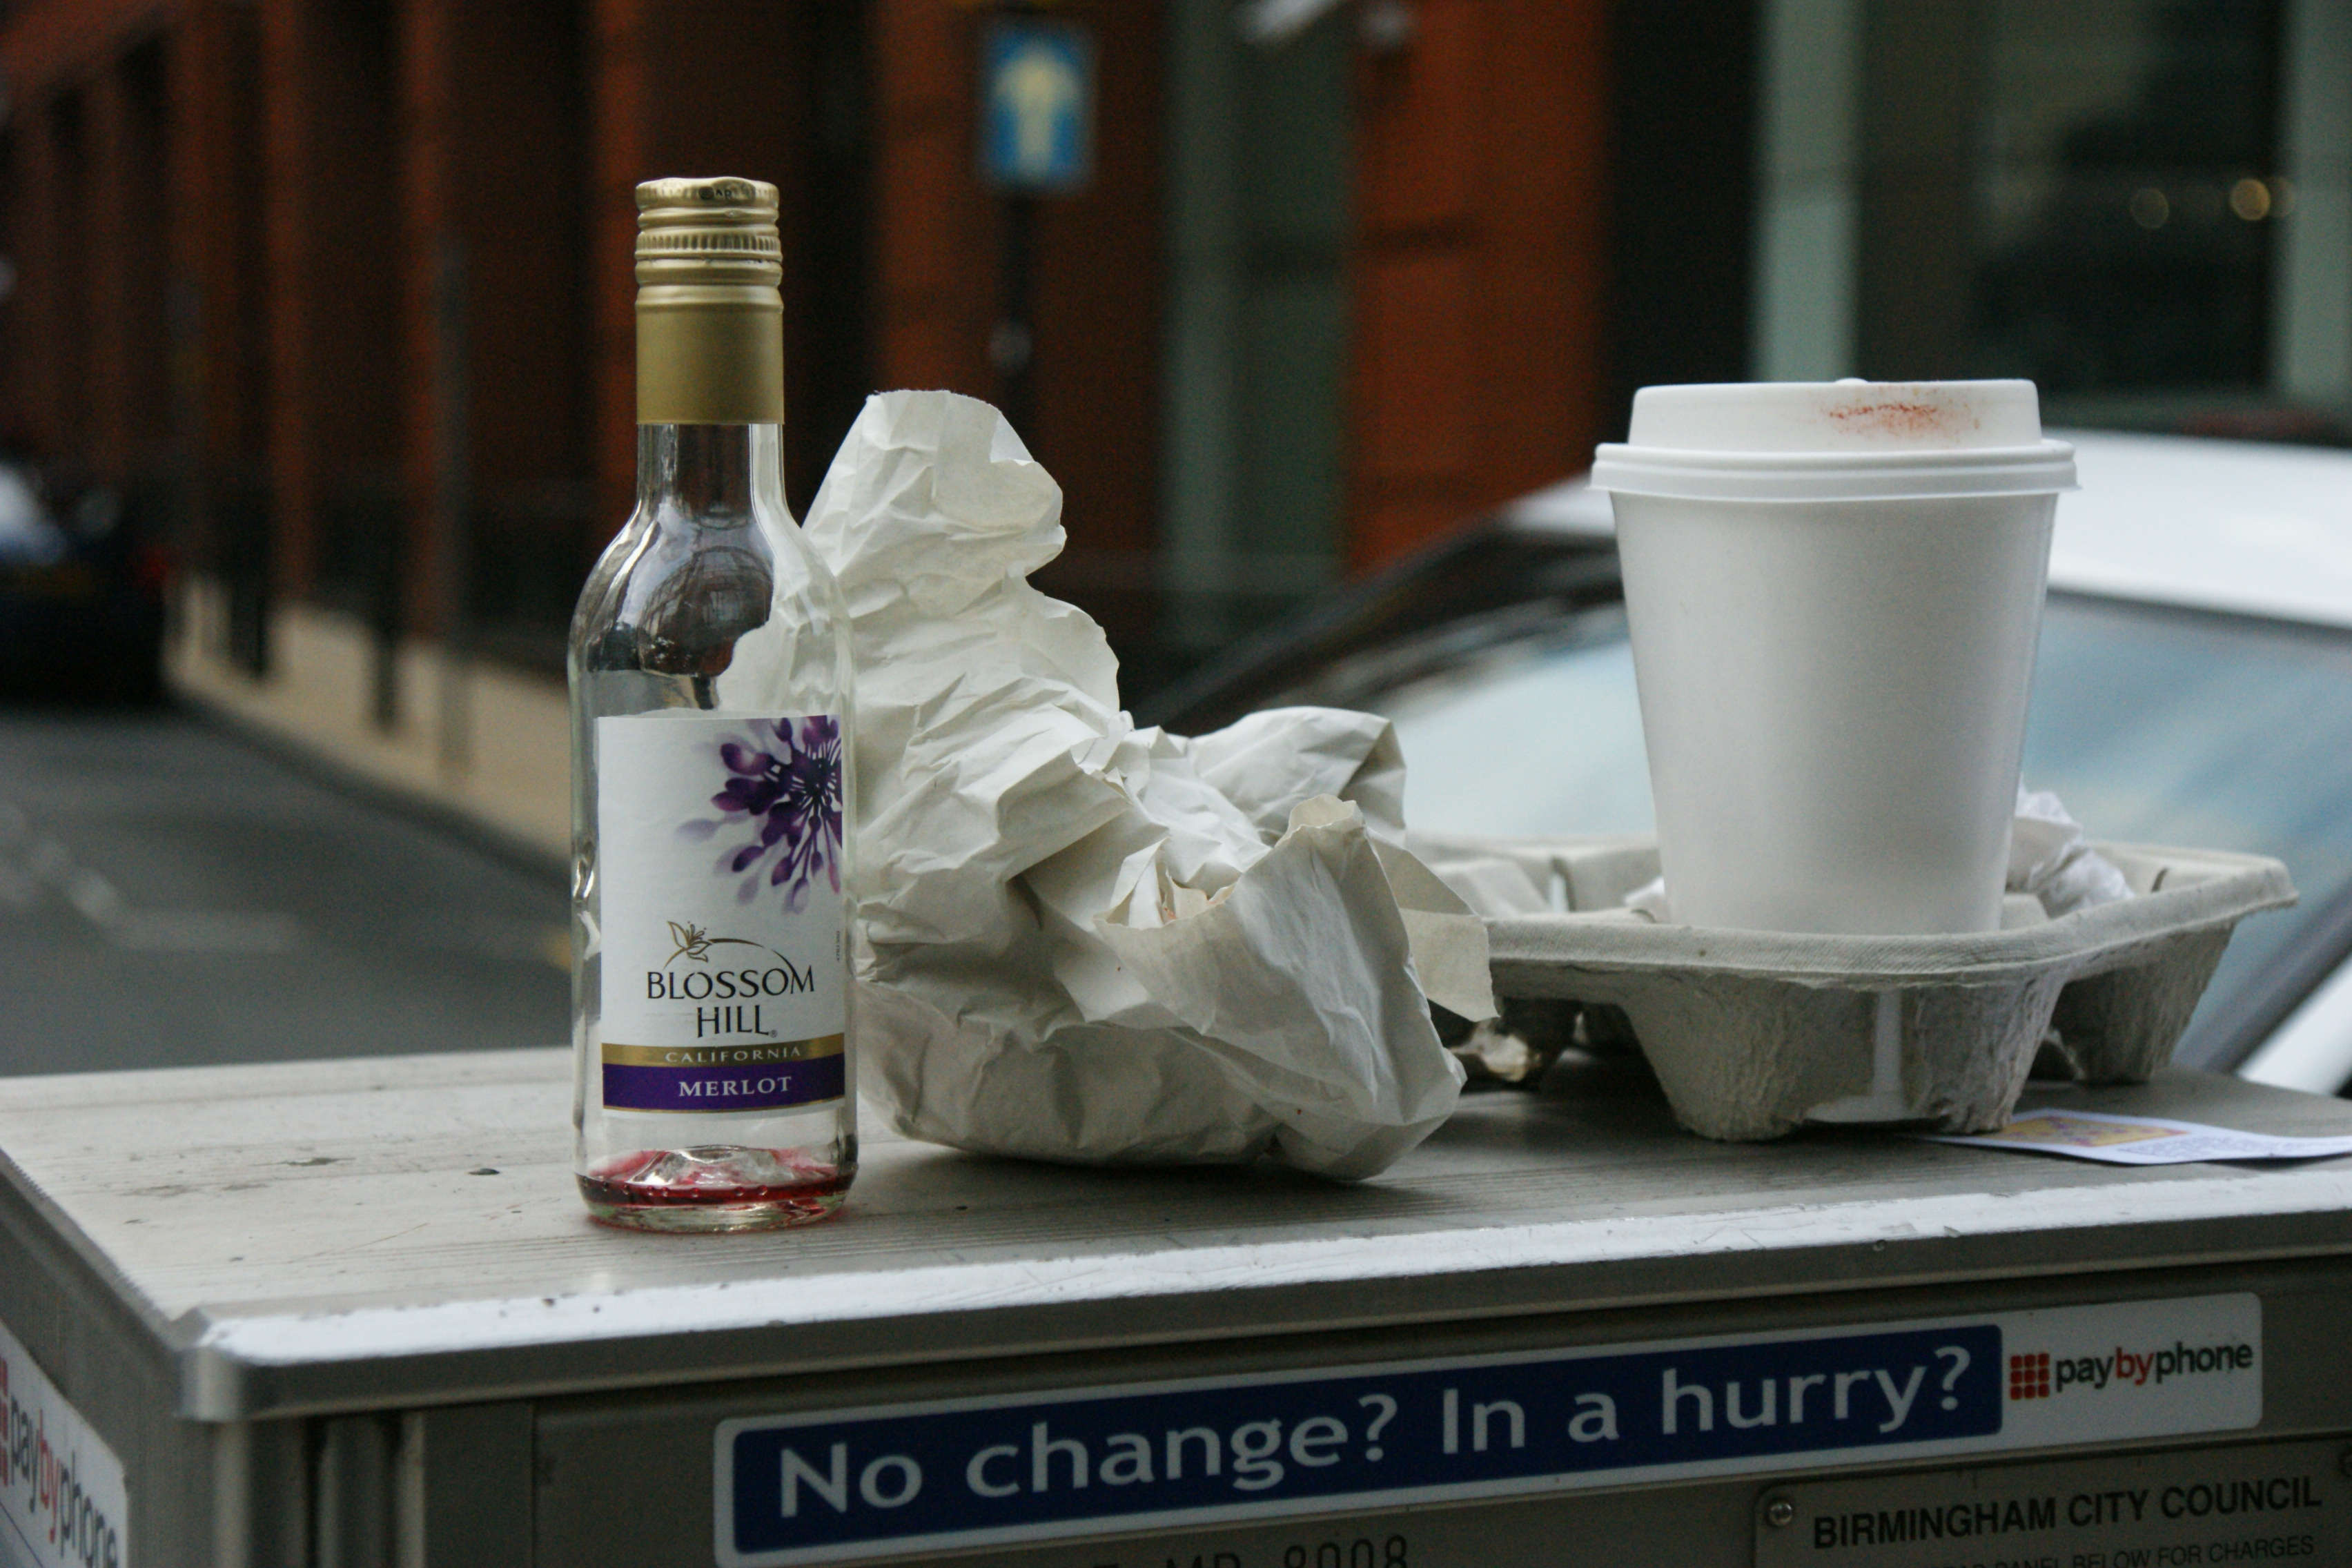 Rubbish on the rise with takeaway only